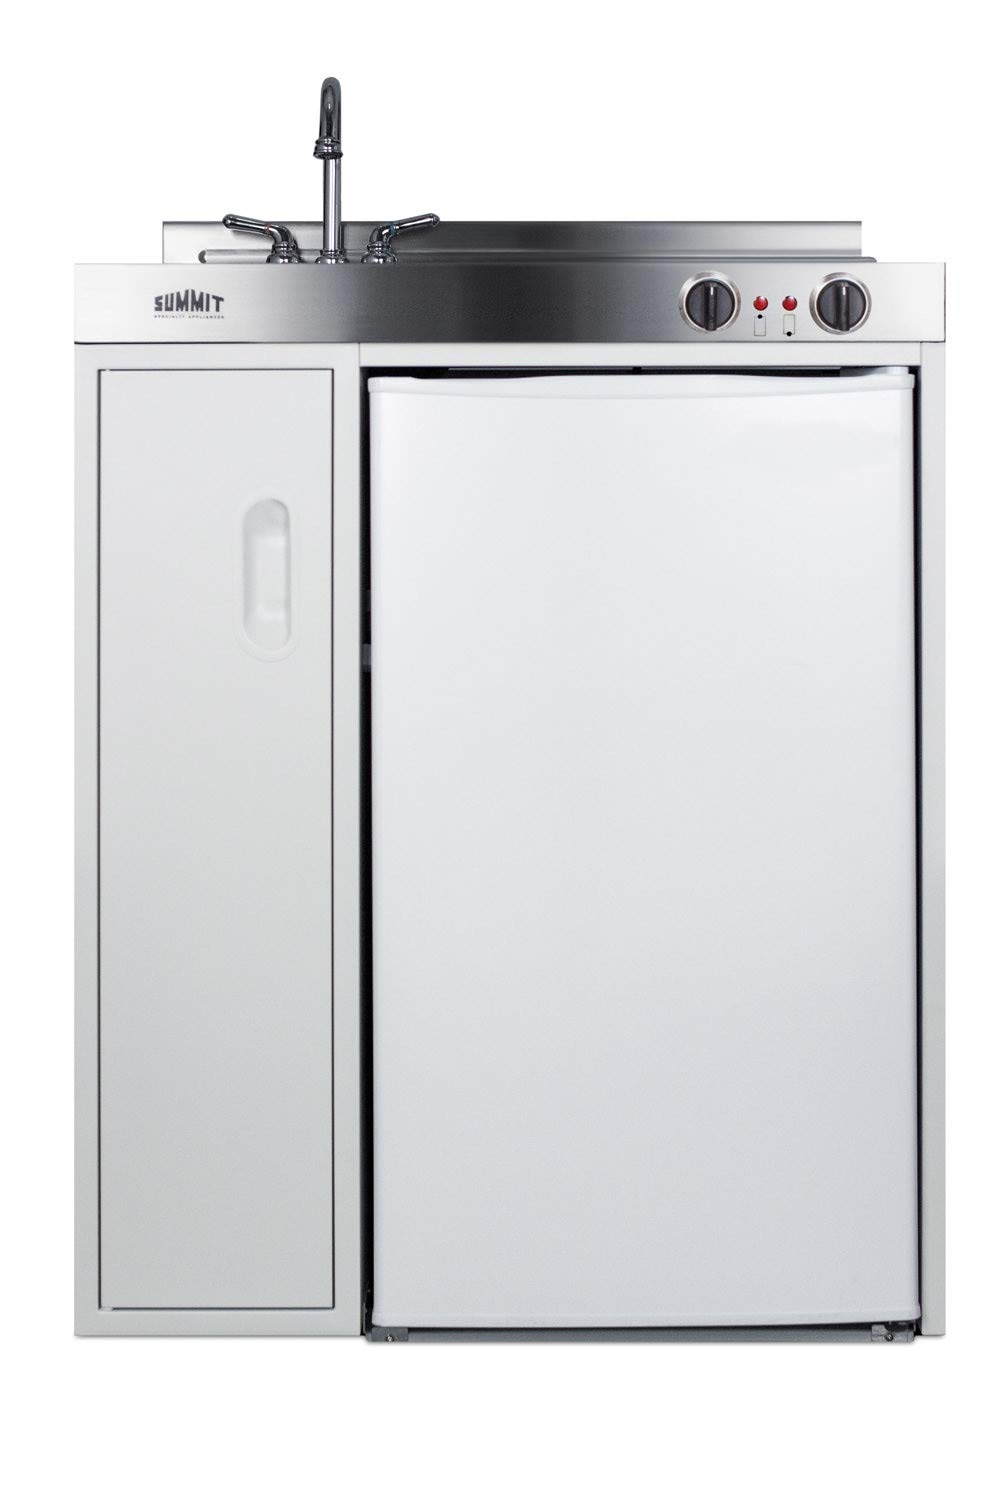 All In One Kitchenette Units.Amazon Com Summit C30el 30 Inch Wide All In One Kitchen Unit